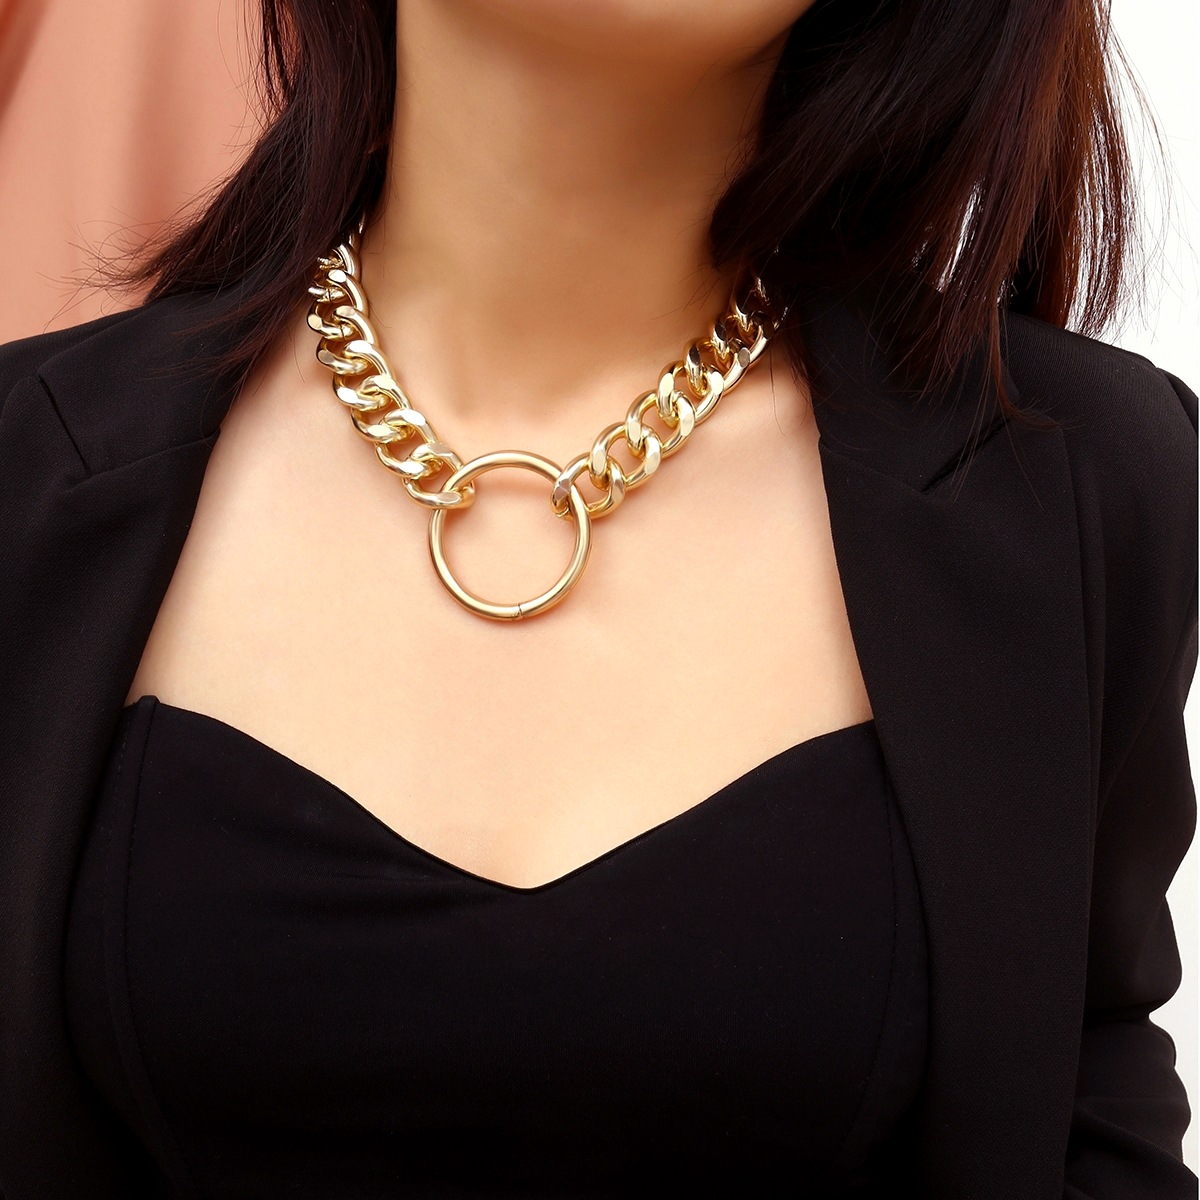 KingDeng Punk Exaggerated Chain Item Decorated Female Simple Geometric Circle Retro Necklace Hiphop Choker Gold Chain 2019